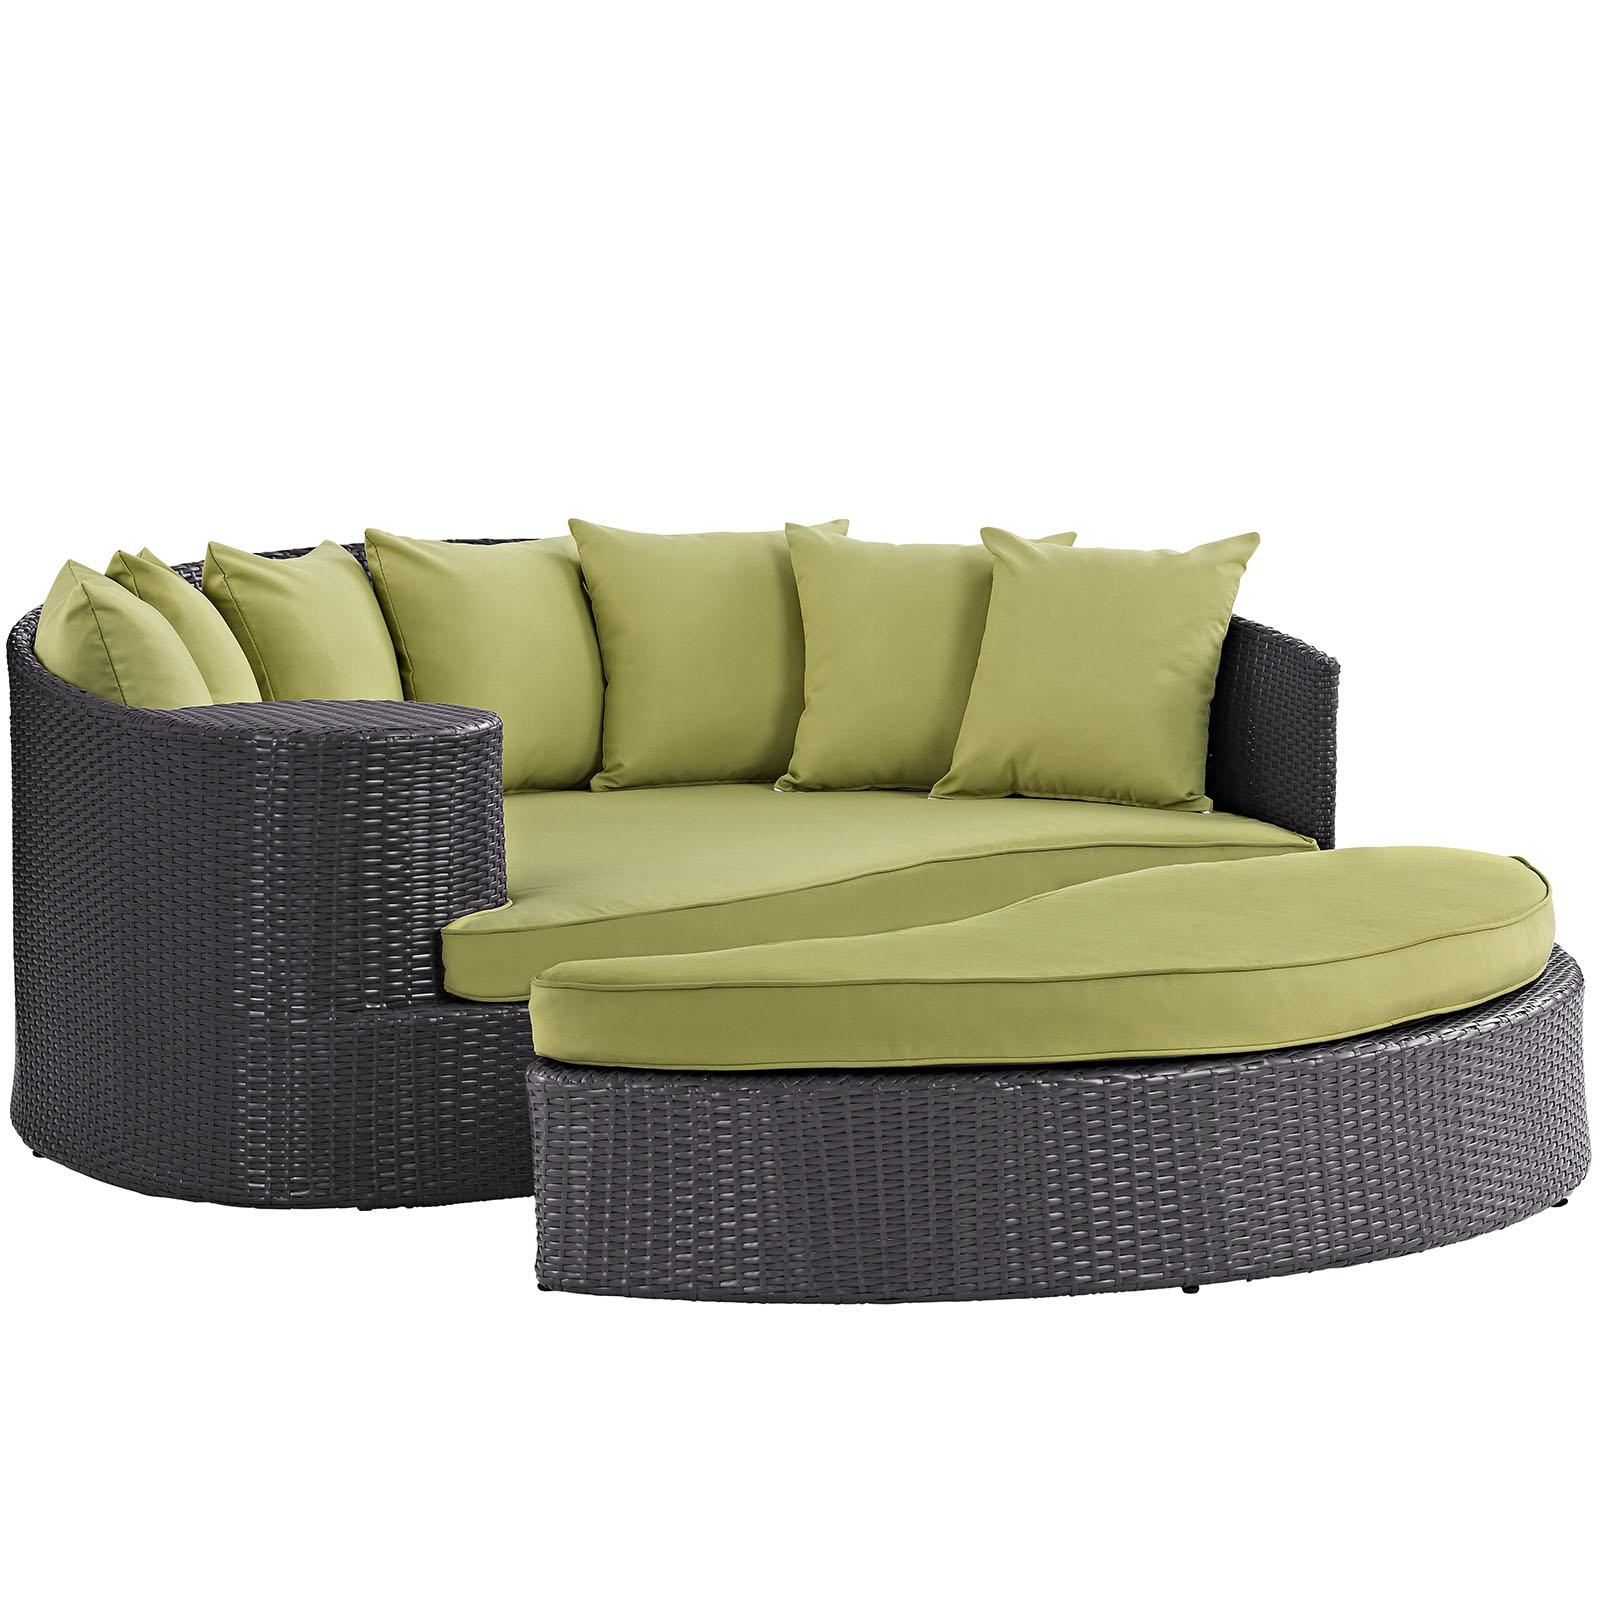 - Outdoor Patio Wicker Daybed EEI-645 - Patio Furniture Co